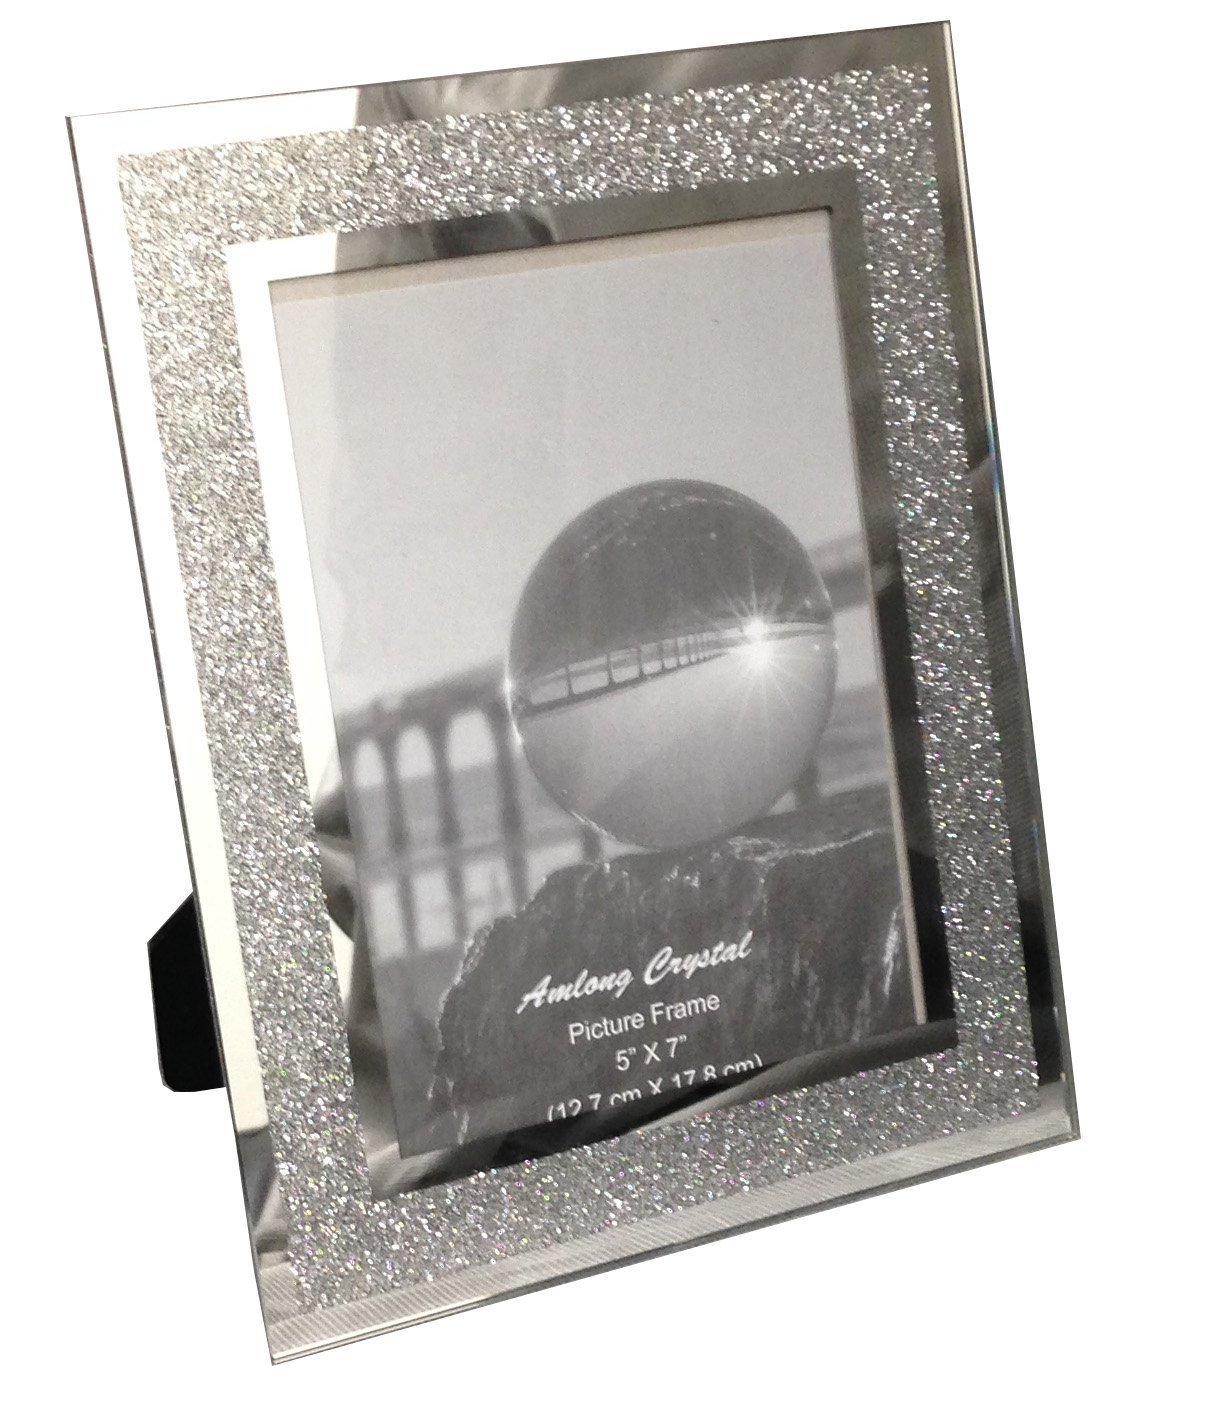 Amazoncom Amlong Crystal Sparkle Mirror Glass Picture Frames 5 X 7